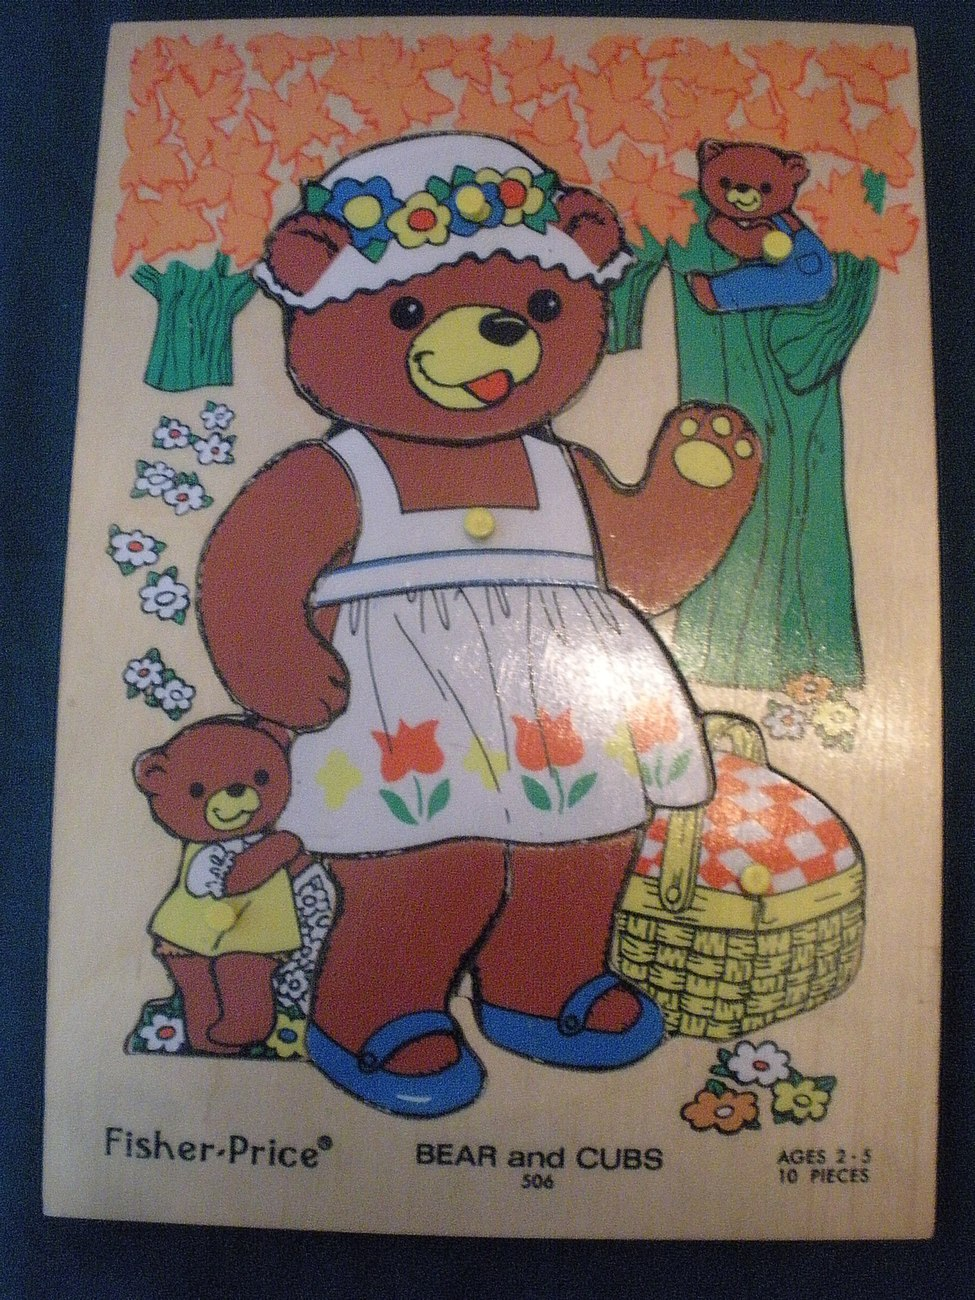 Vintage Fisher Price #506 Bears and Cubs Pick Up 'N Peek Wood Puzzle EXC-EXC++!